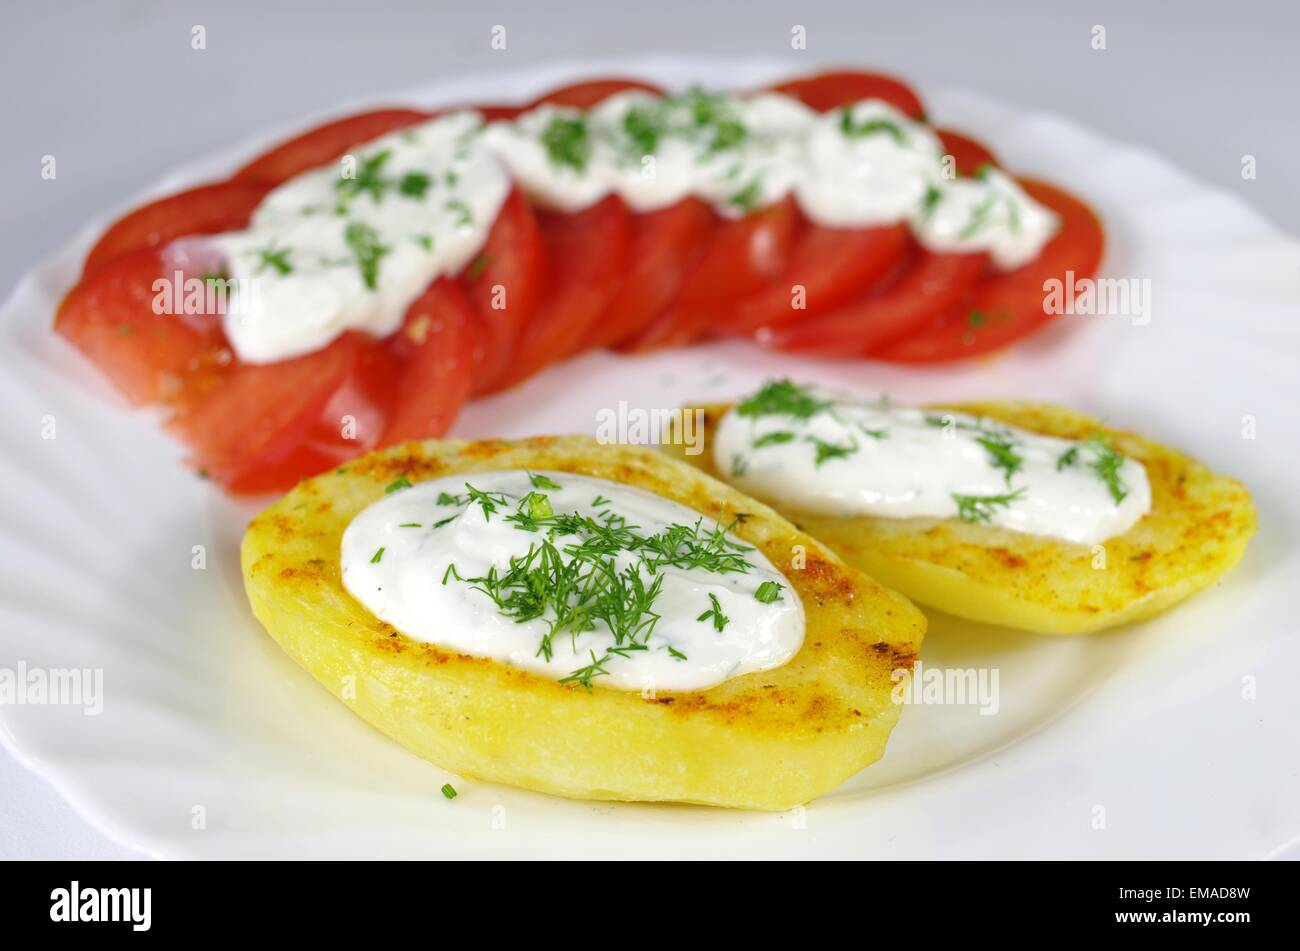 Outstanding Baked Potato With Cottage Cheese Chives And Tomatoes On A Interior Design Ideas Gentotryabchikinfo